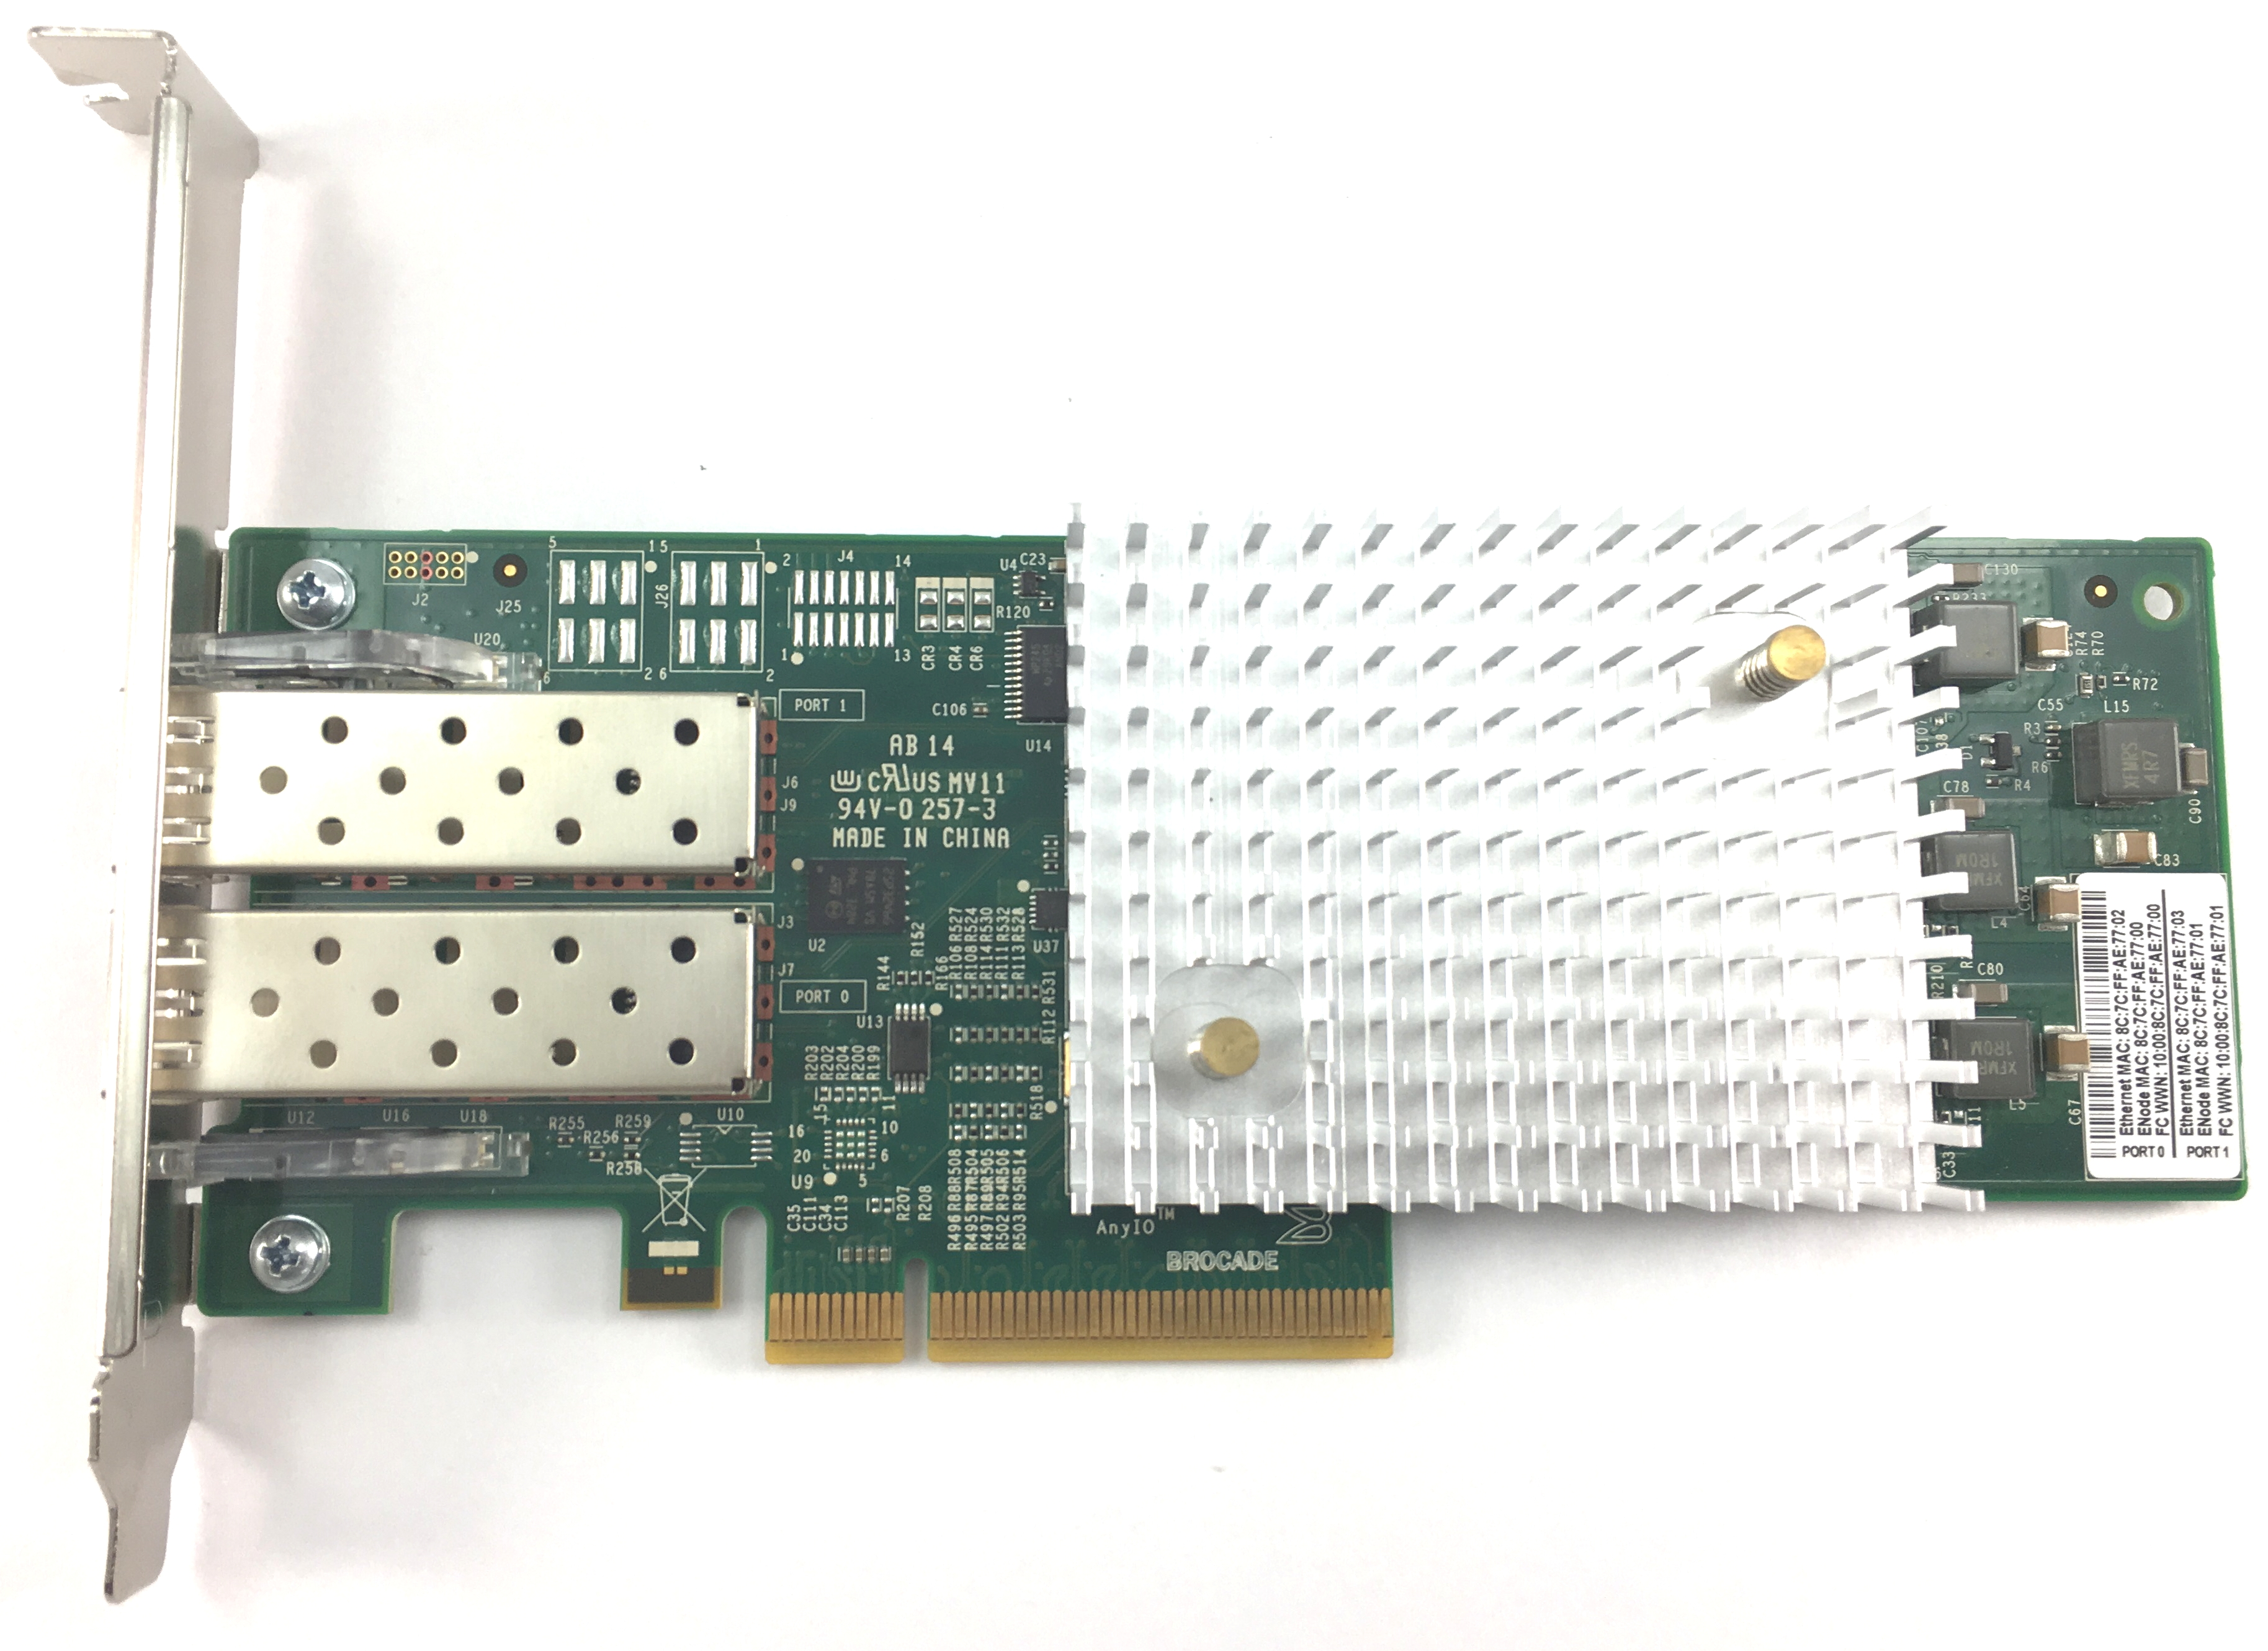 Brocade 18602 16GB Dual Port Host Bus Adapter (80-1006035-03)